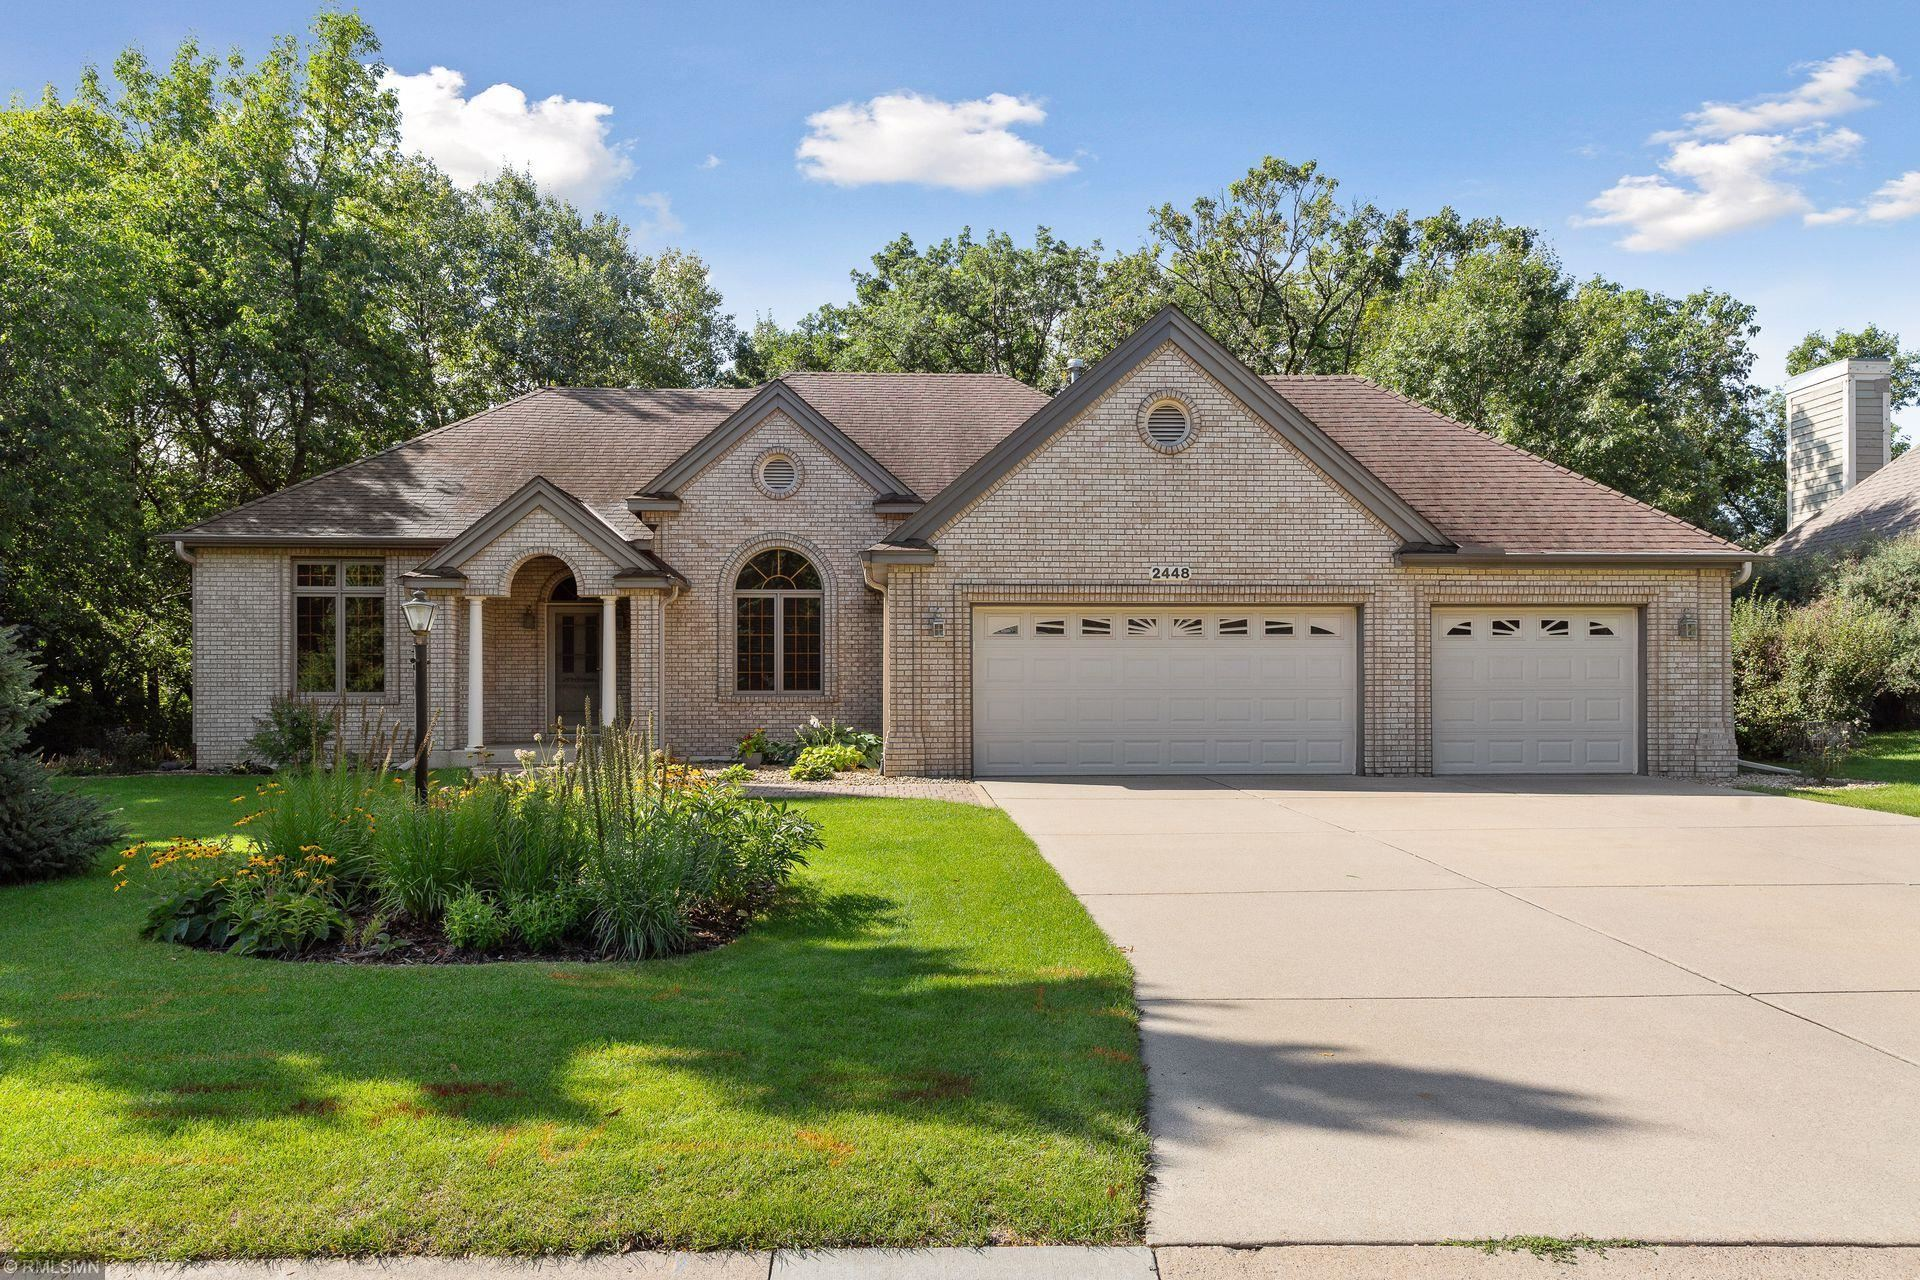 2448 Hillwood Drive E, Maplewood, MN 55119 - MLS#: 5656030